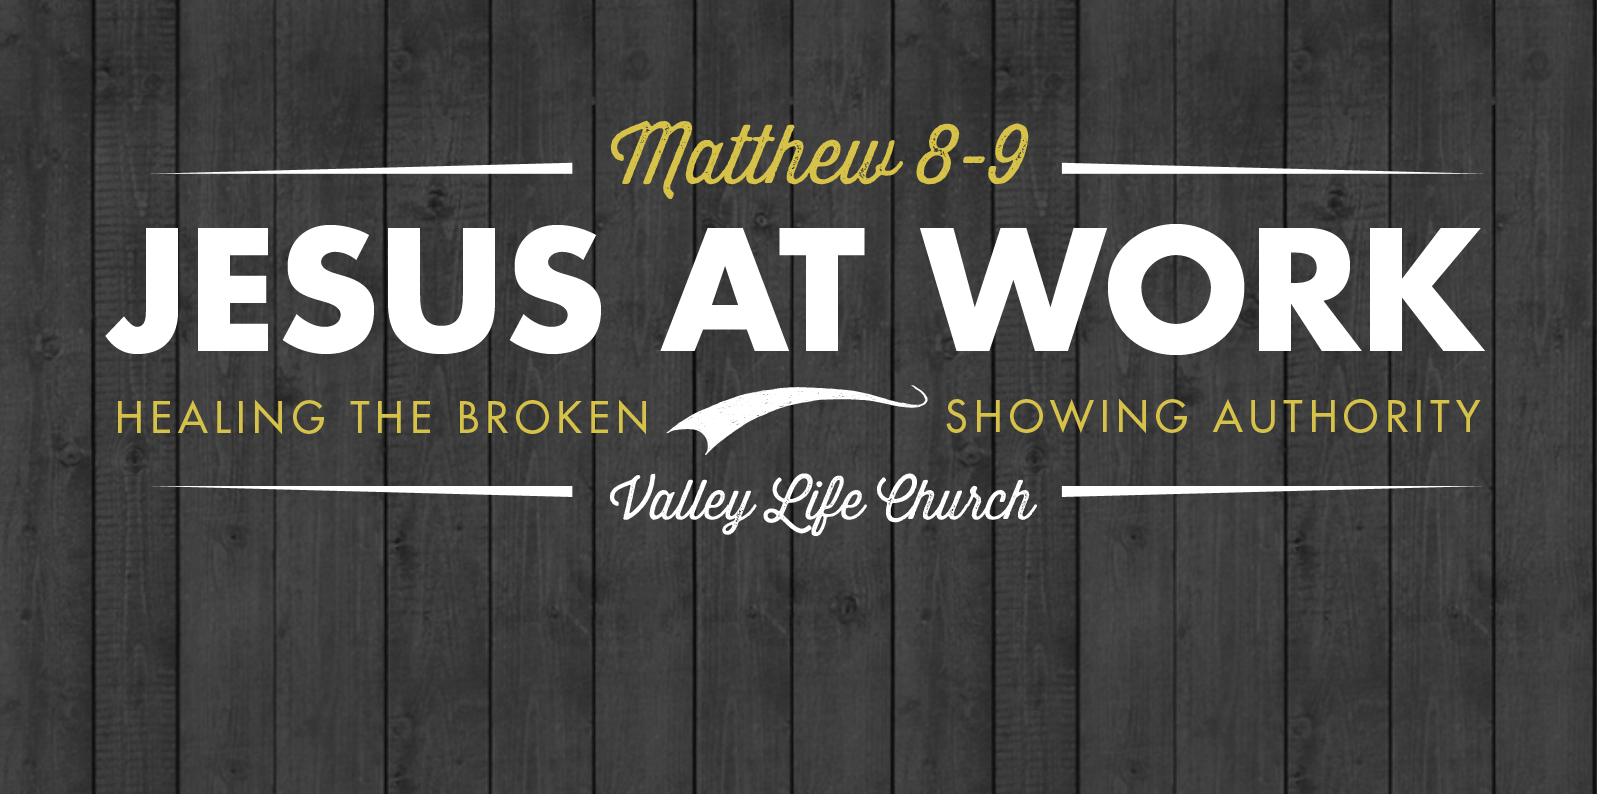 Our Current Sermon Series